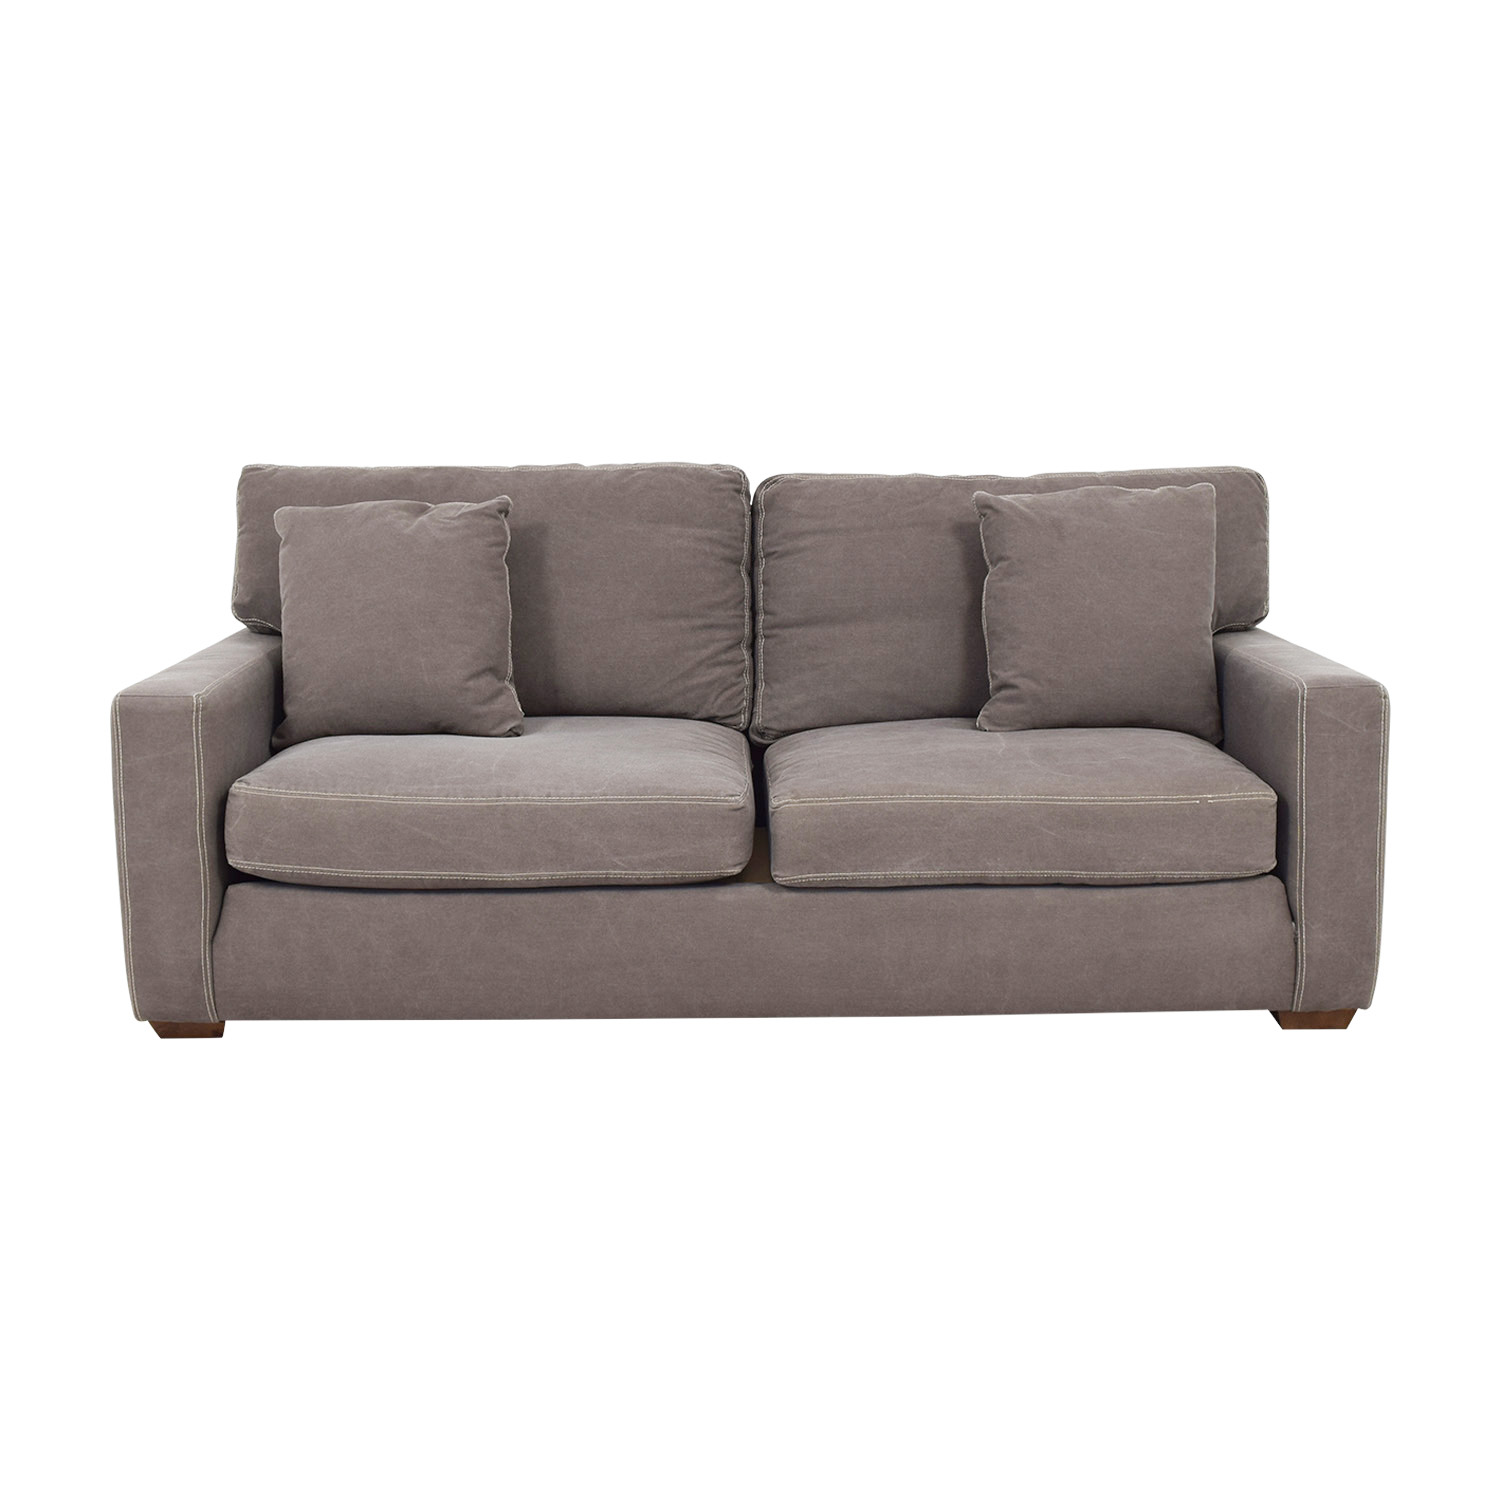 buy Klaussner Grey Canvas Two Cushion Sofa Klaussner Classic Sofas